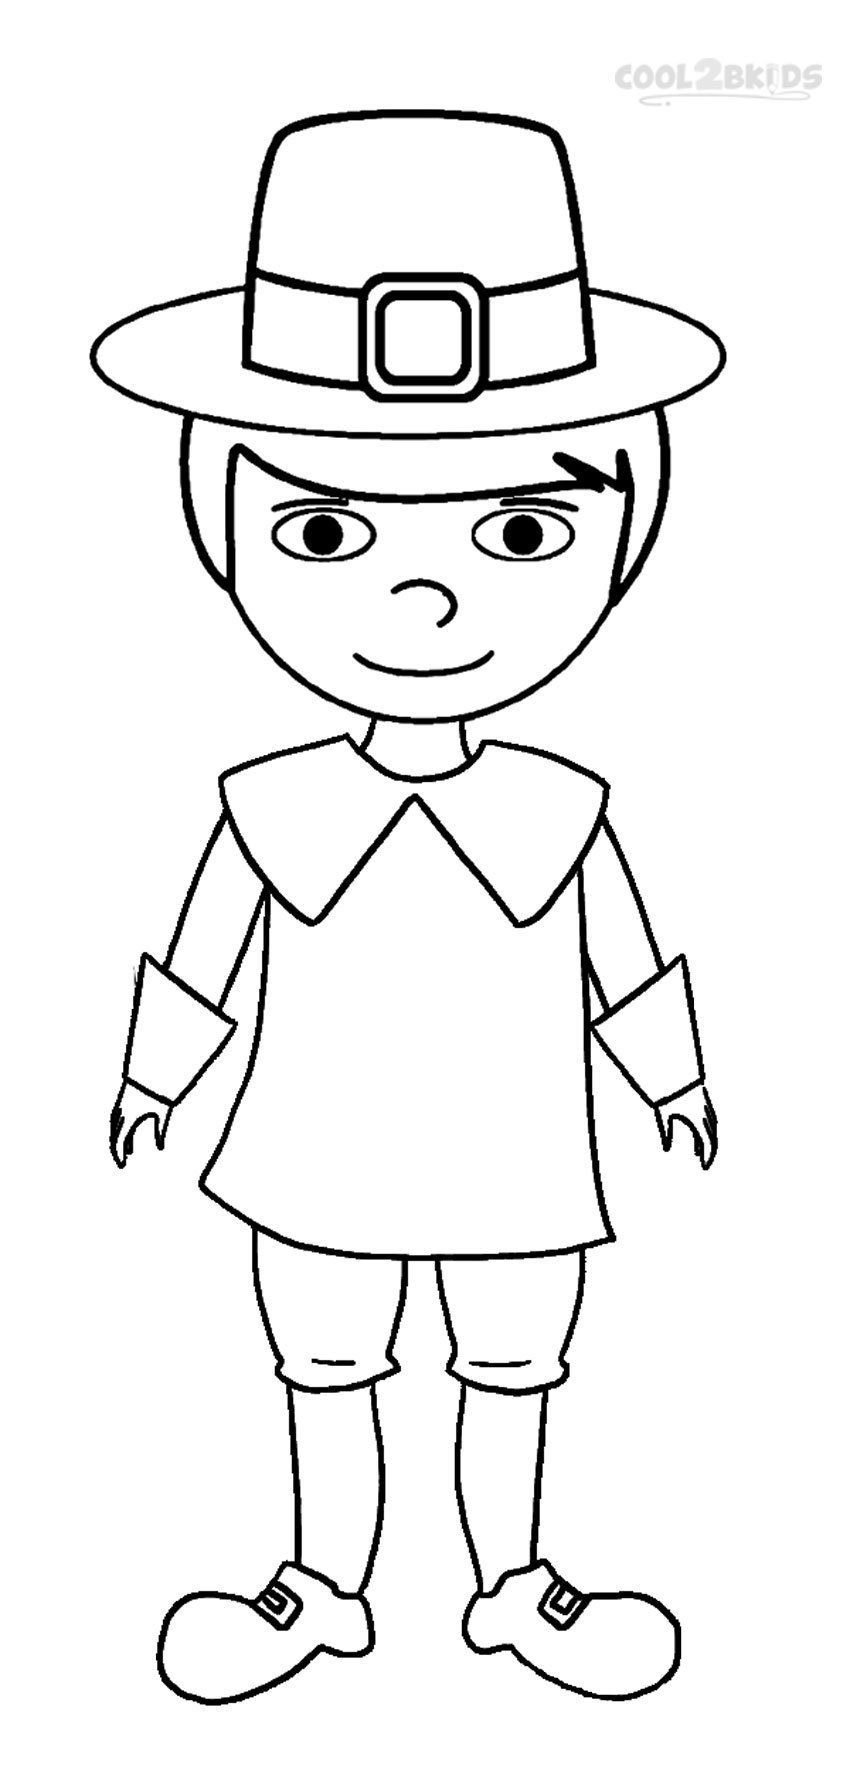 Printable Pilgrims Coloring Pages For Kids Cool2bkids Within